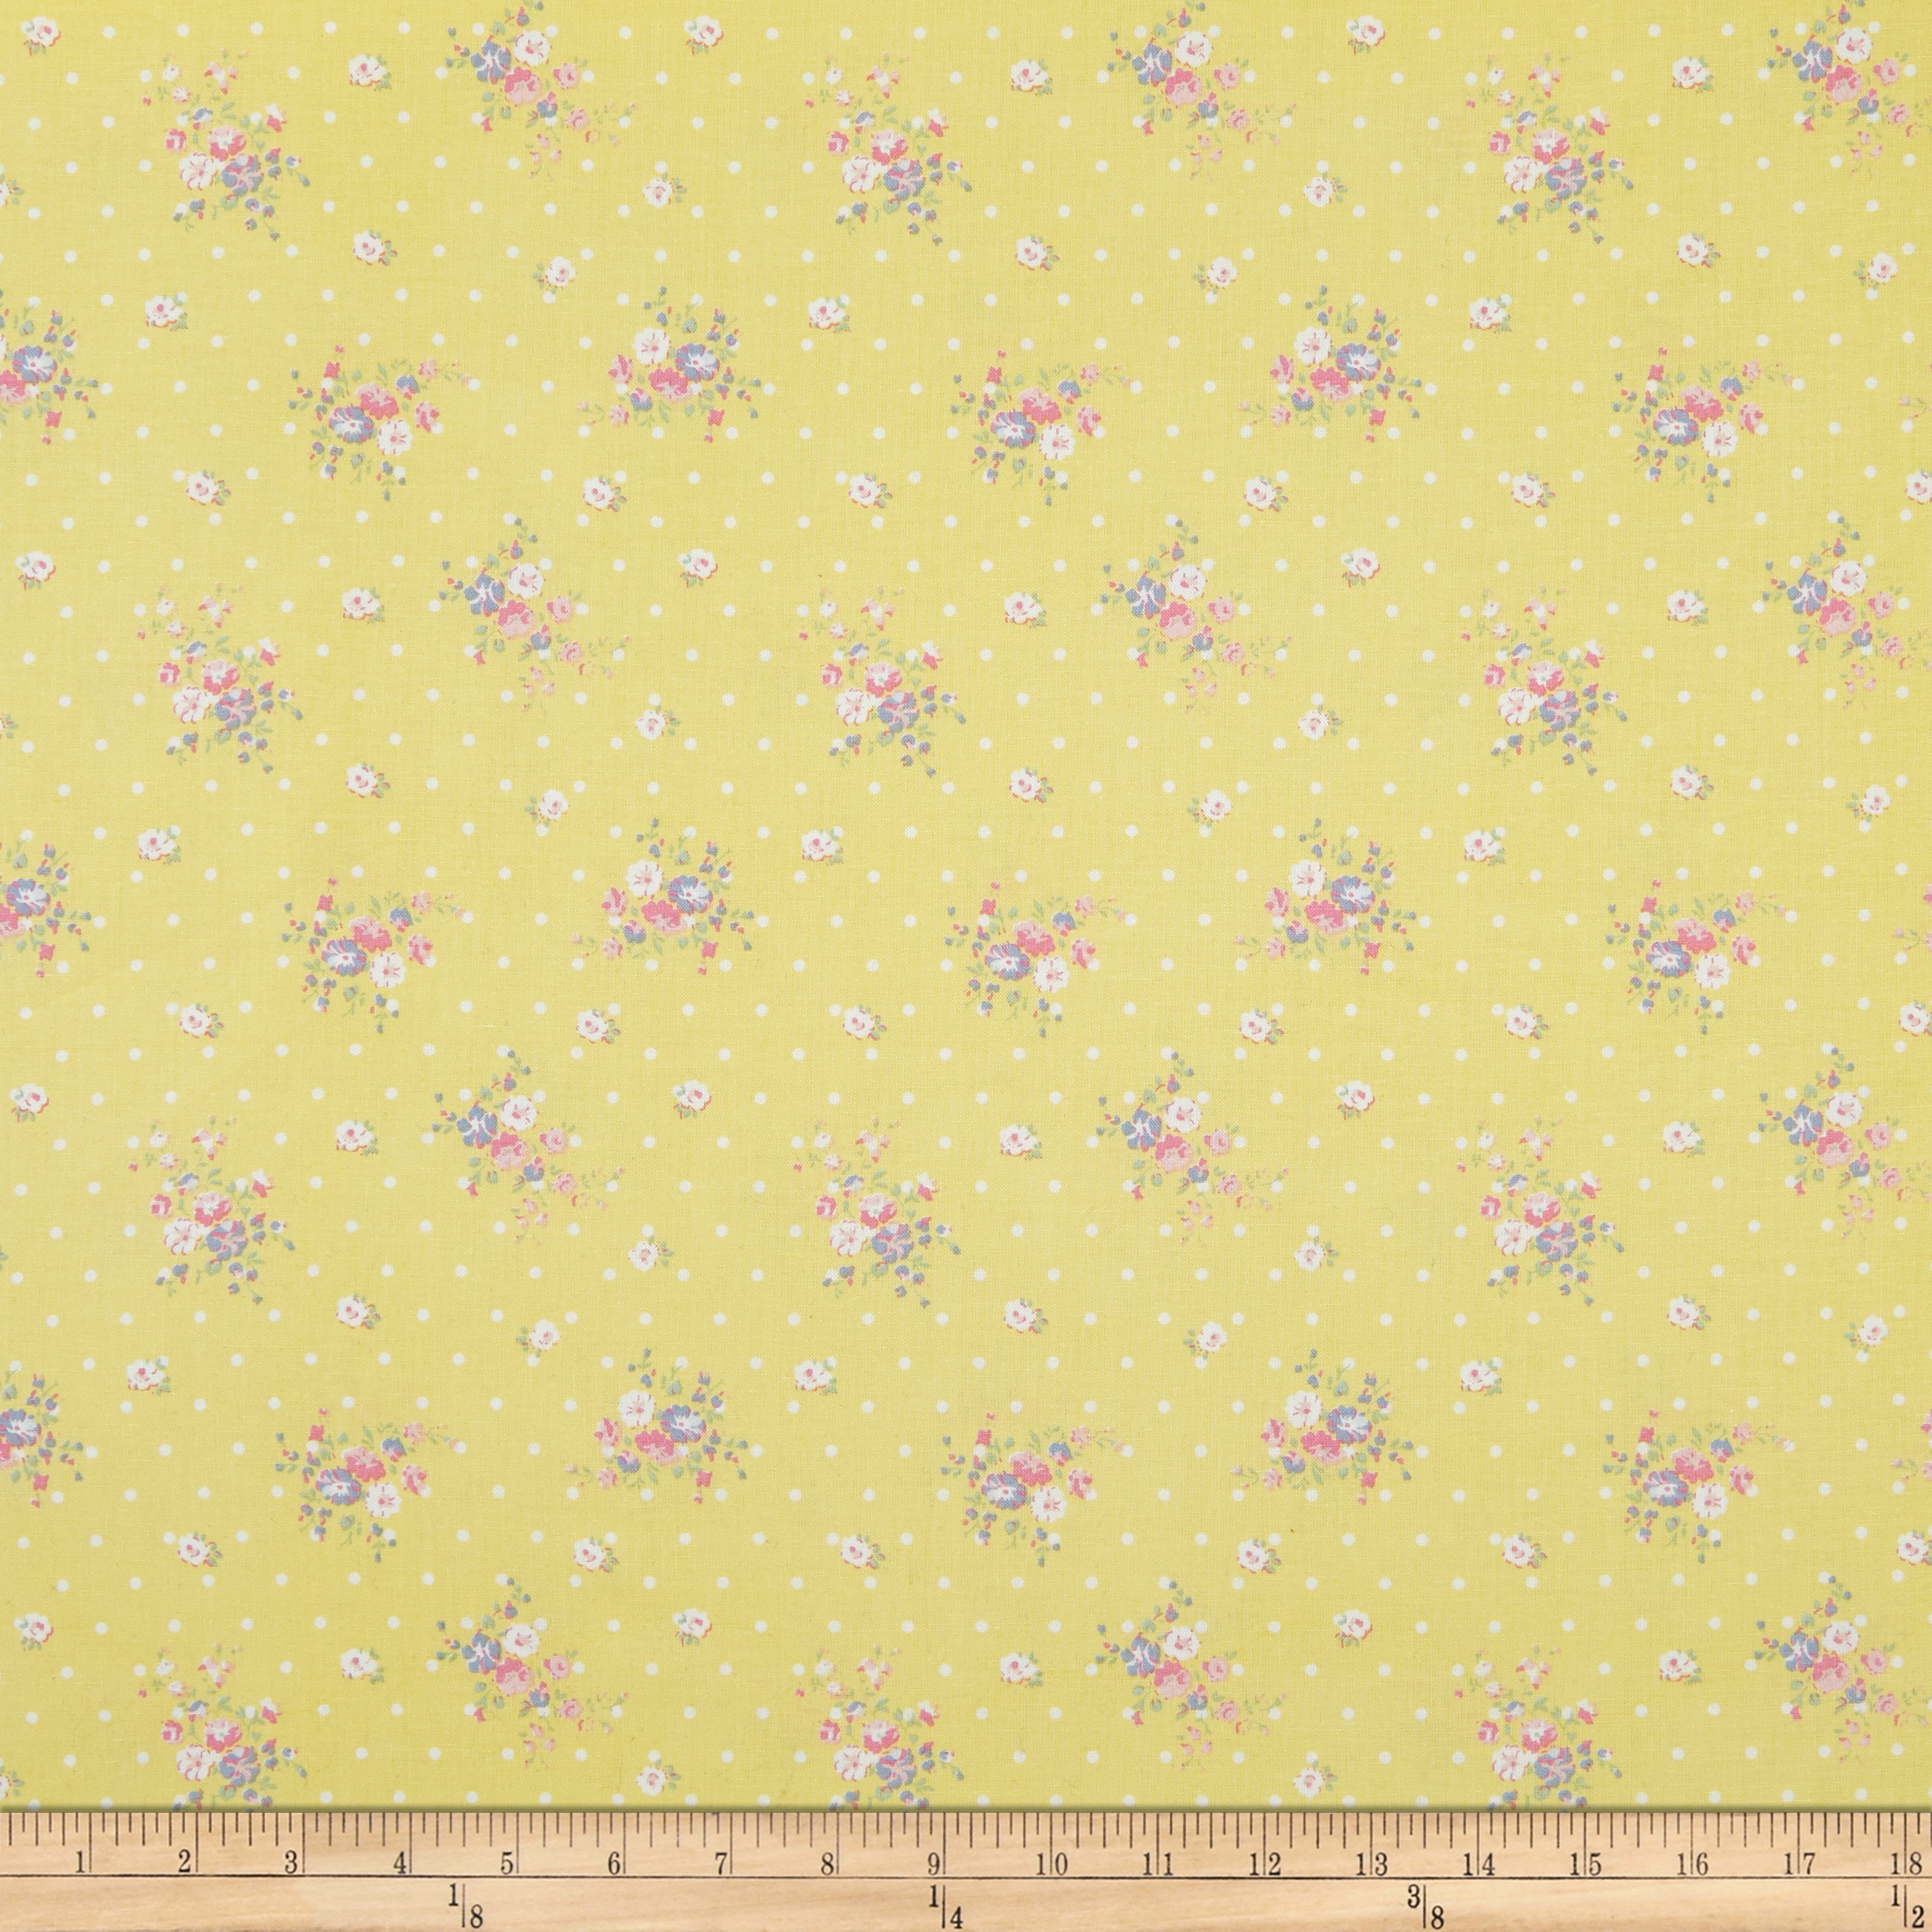 Whistler Studios Roslyn Dotted Floral Yellow Fabric